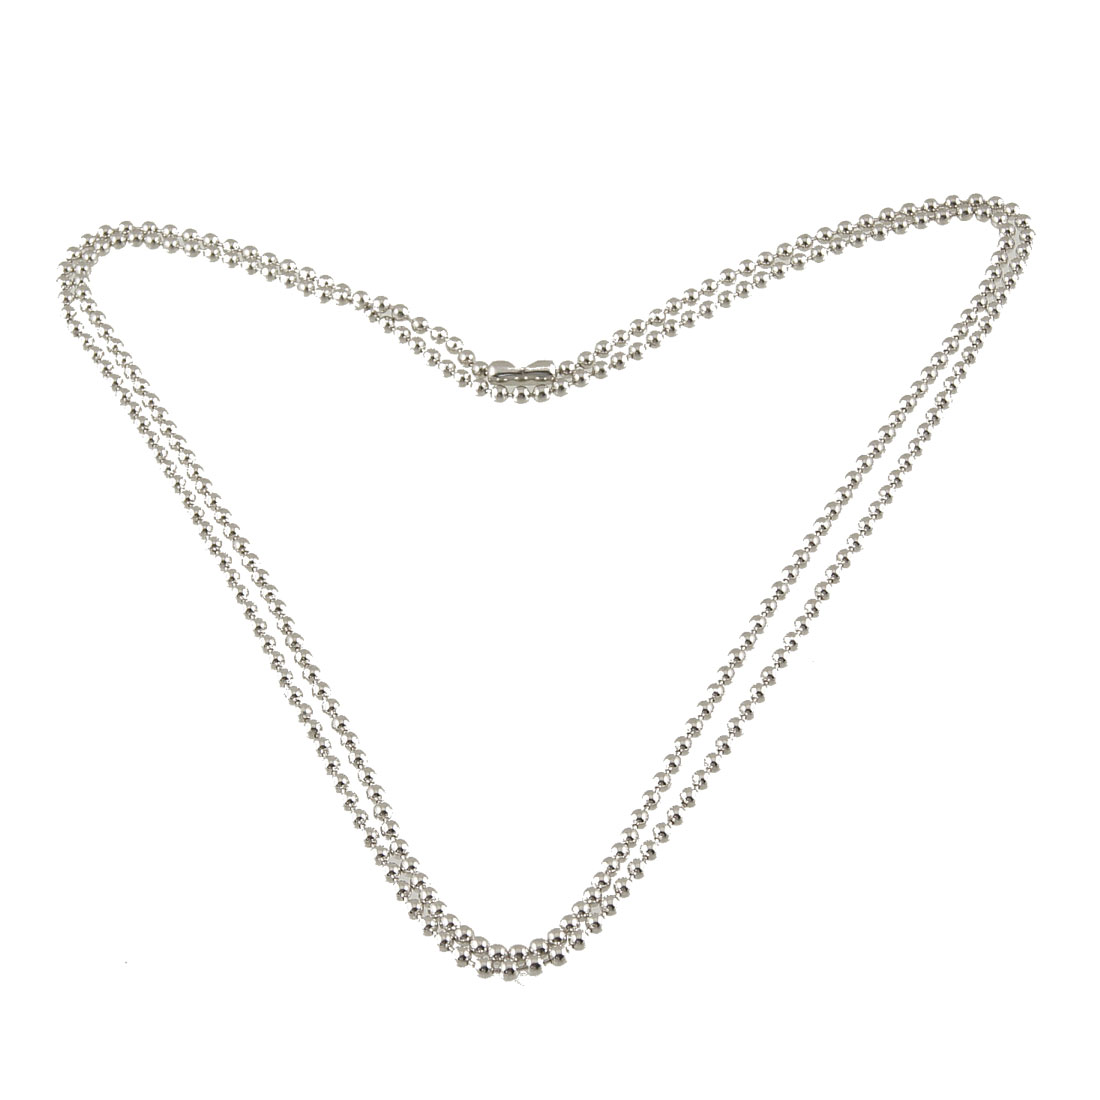 "35.4"" Length Stainless Steel Stamping Silver Tone Beaded Chain Necklaces"